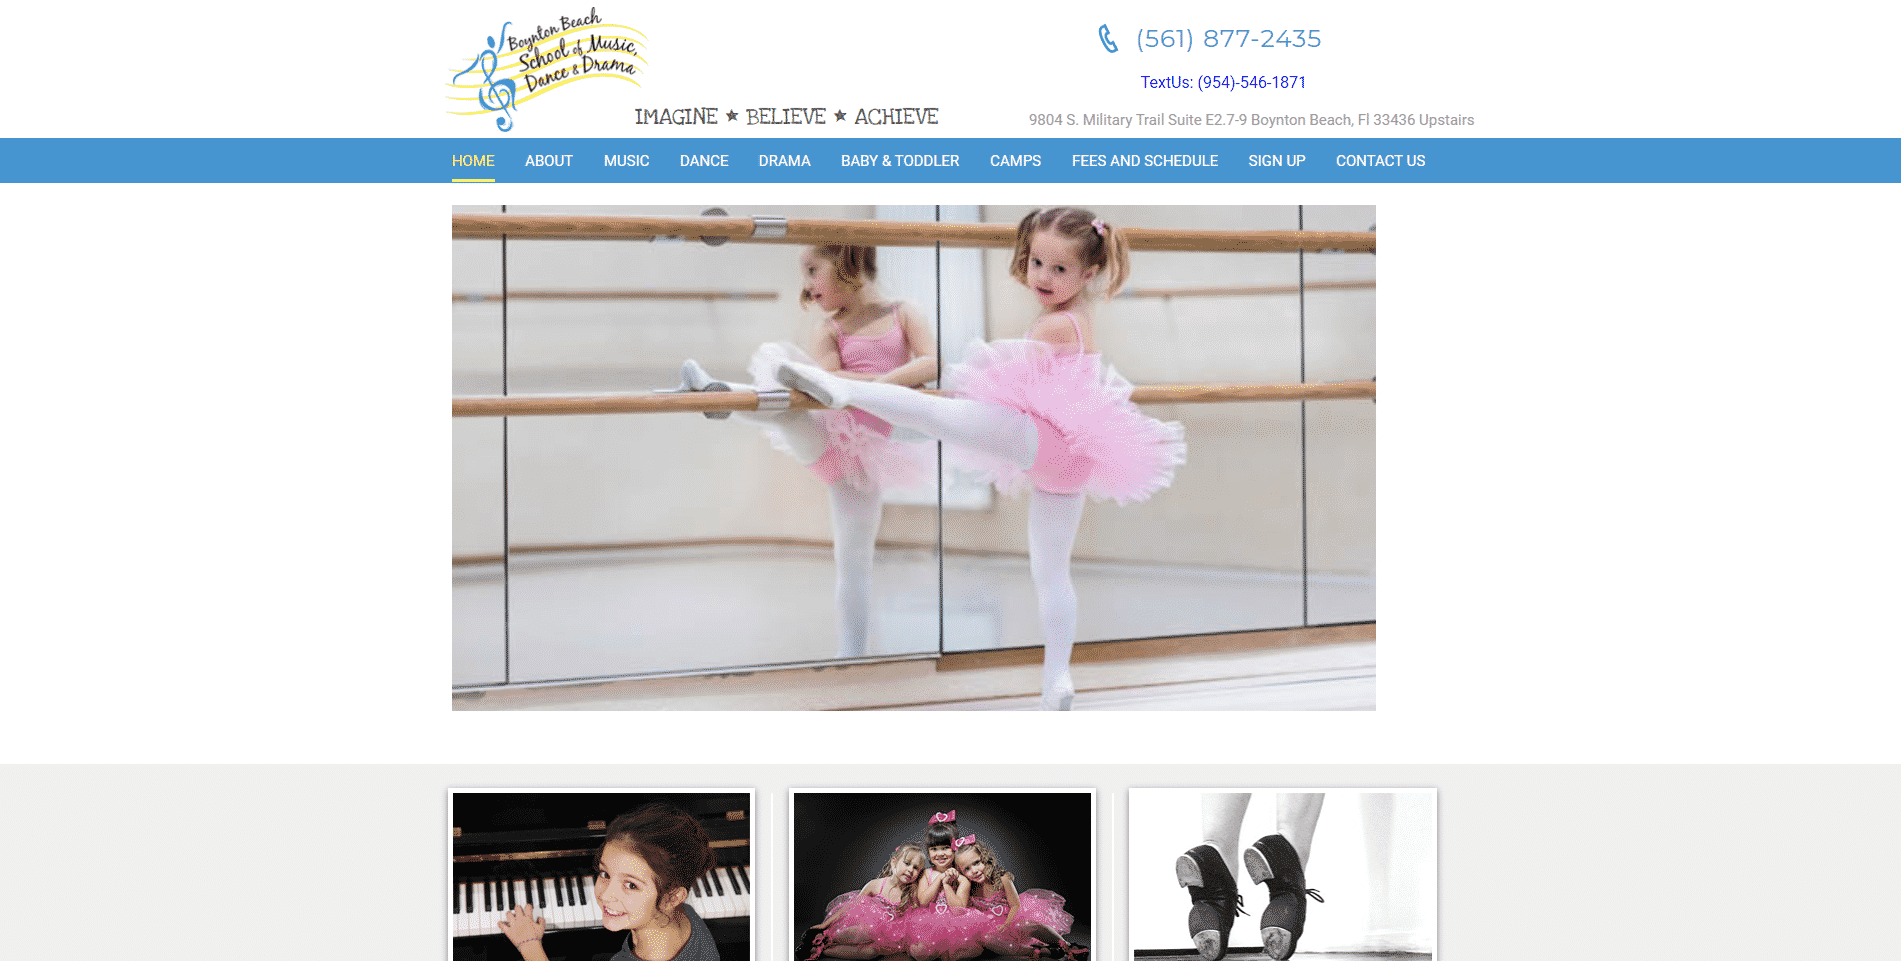 Boynton Beach School of Music and Dance